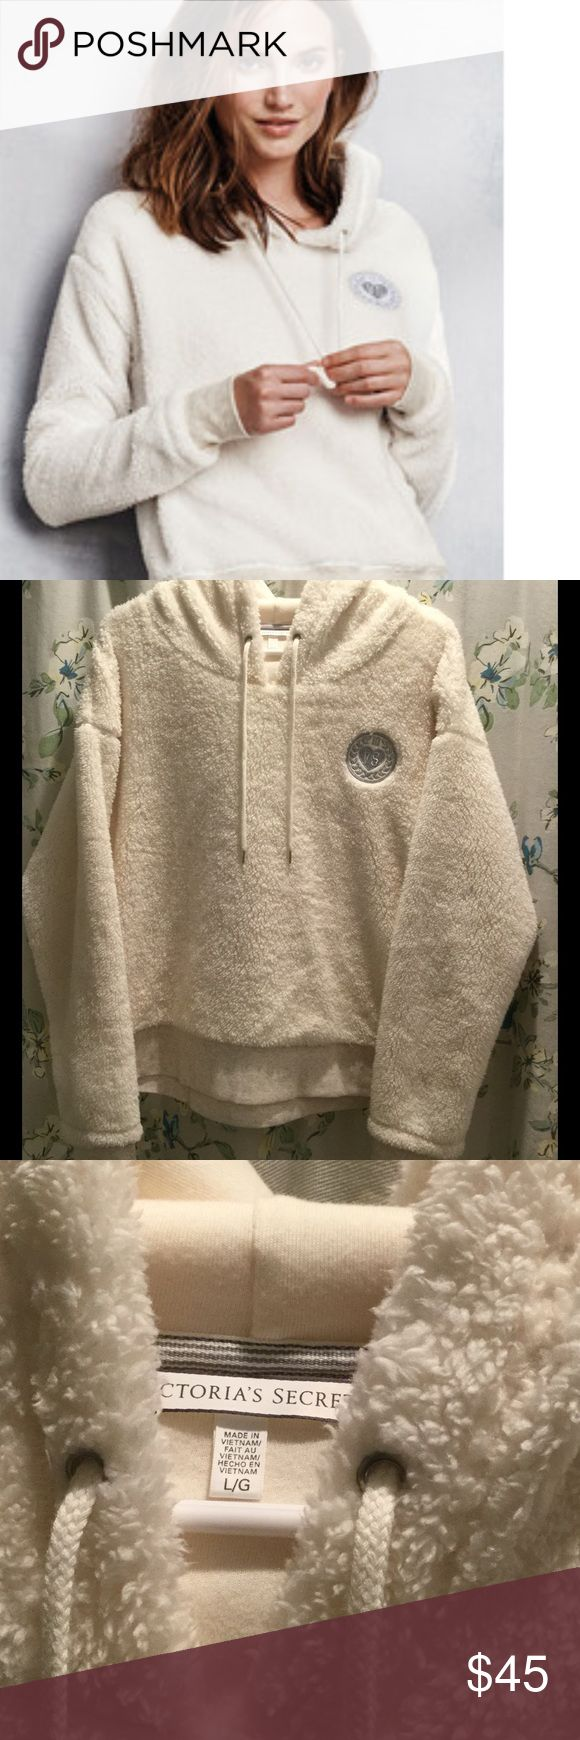 VS Boxy Cropped Sherpa Hoodie - Large White Sherpa boxy cropped Victoria's Secret hoodie. Worn once. Perfect condition. No flaws. Silver threaded Logo on front. Extremely soft. Fleece is on the outside and a very soft Tee shirt material inside. Very warm. No trades. Victoria's Secret Tops Sweatshirts & Hoodies